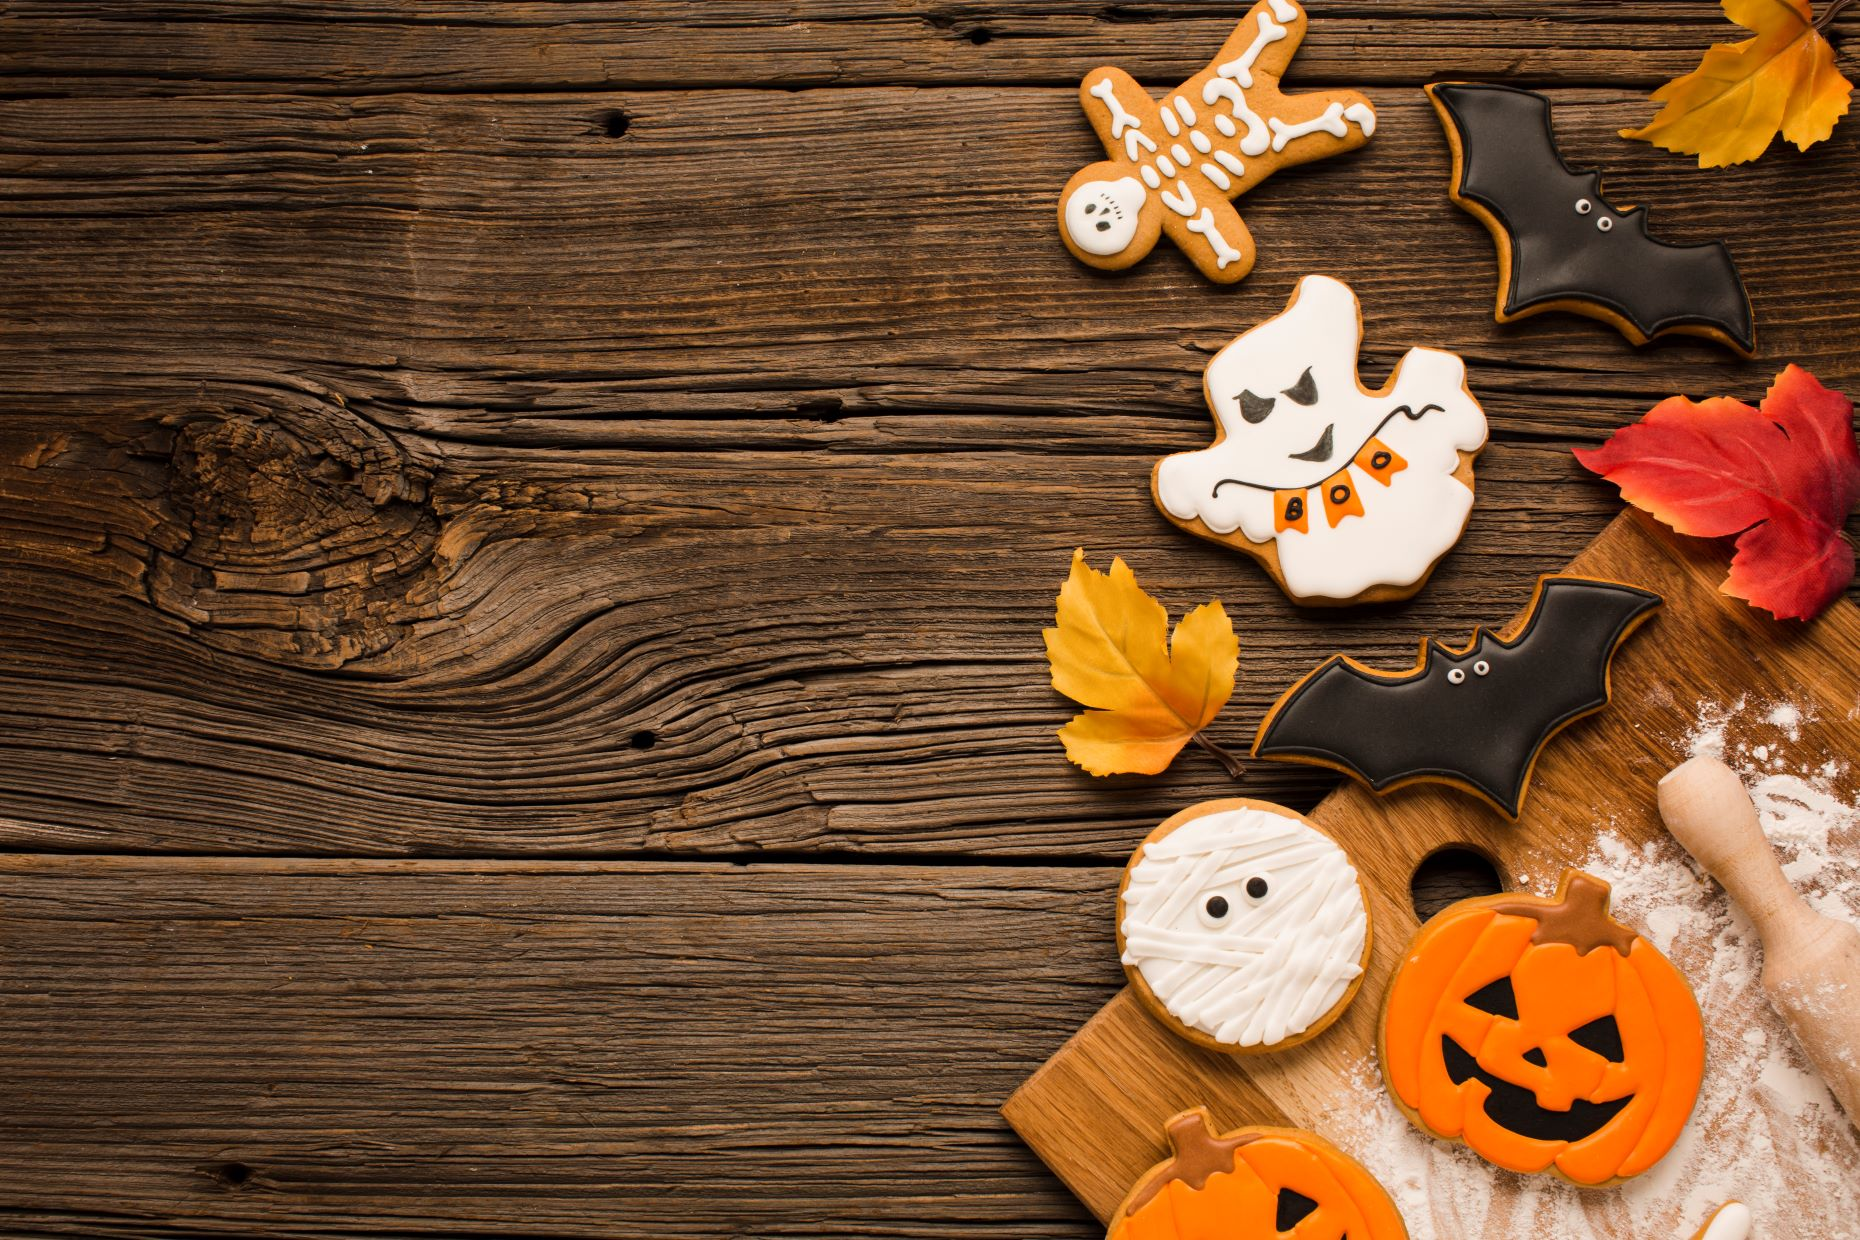 4 Trick-or-Treat Alternative Events Your FEC Can Host